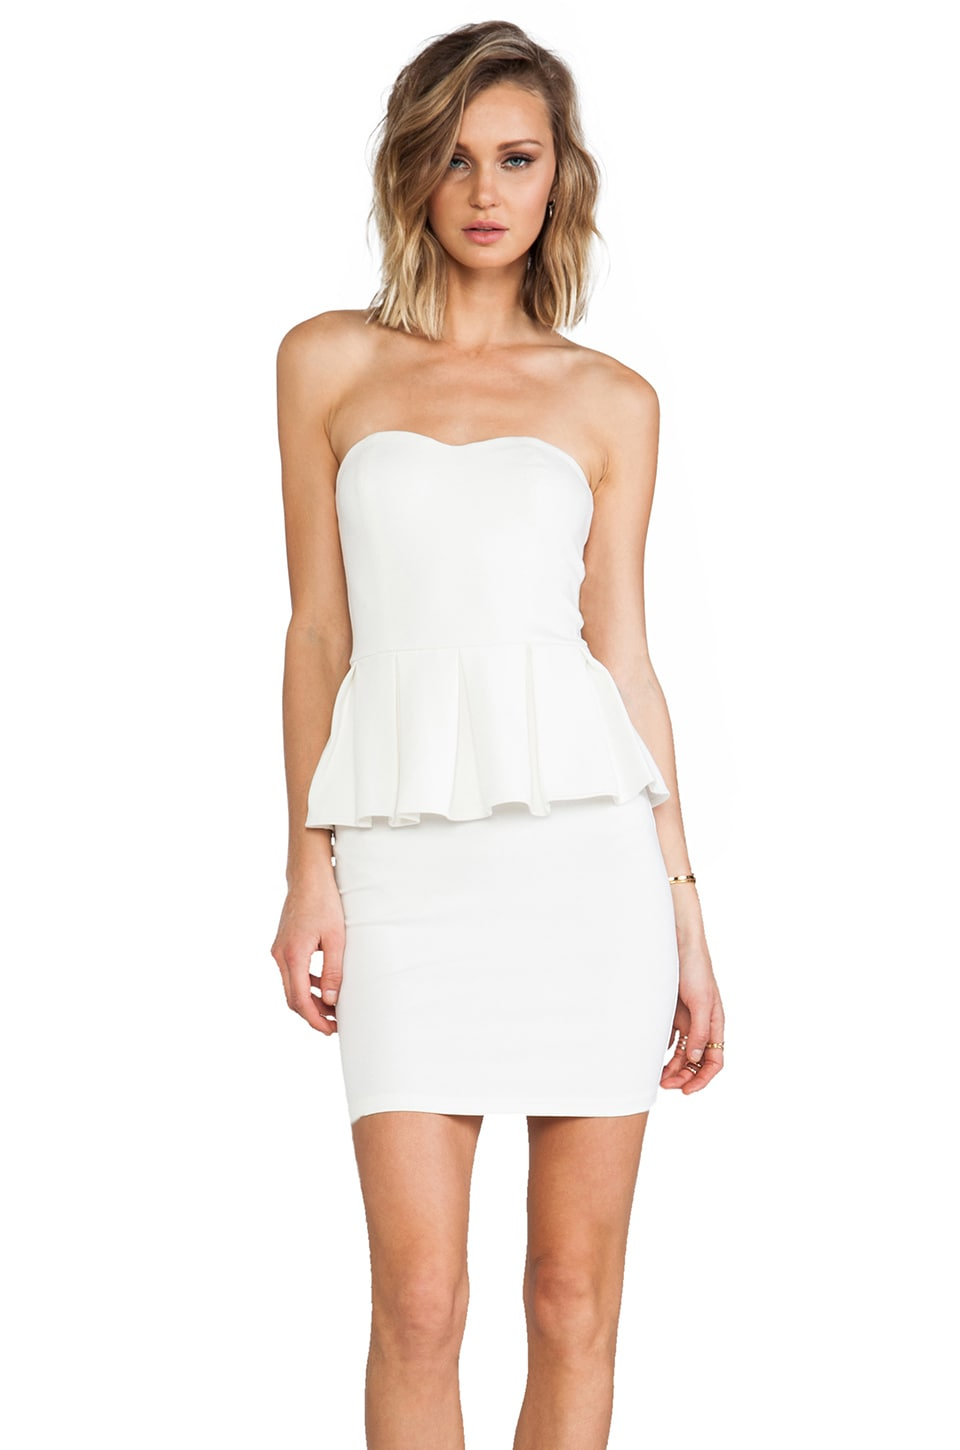 Talulah Spirit of the Wind Peplum Dress in White